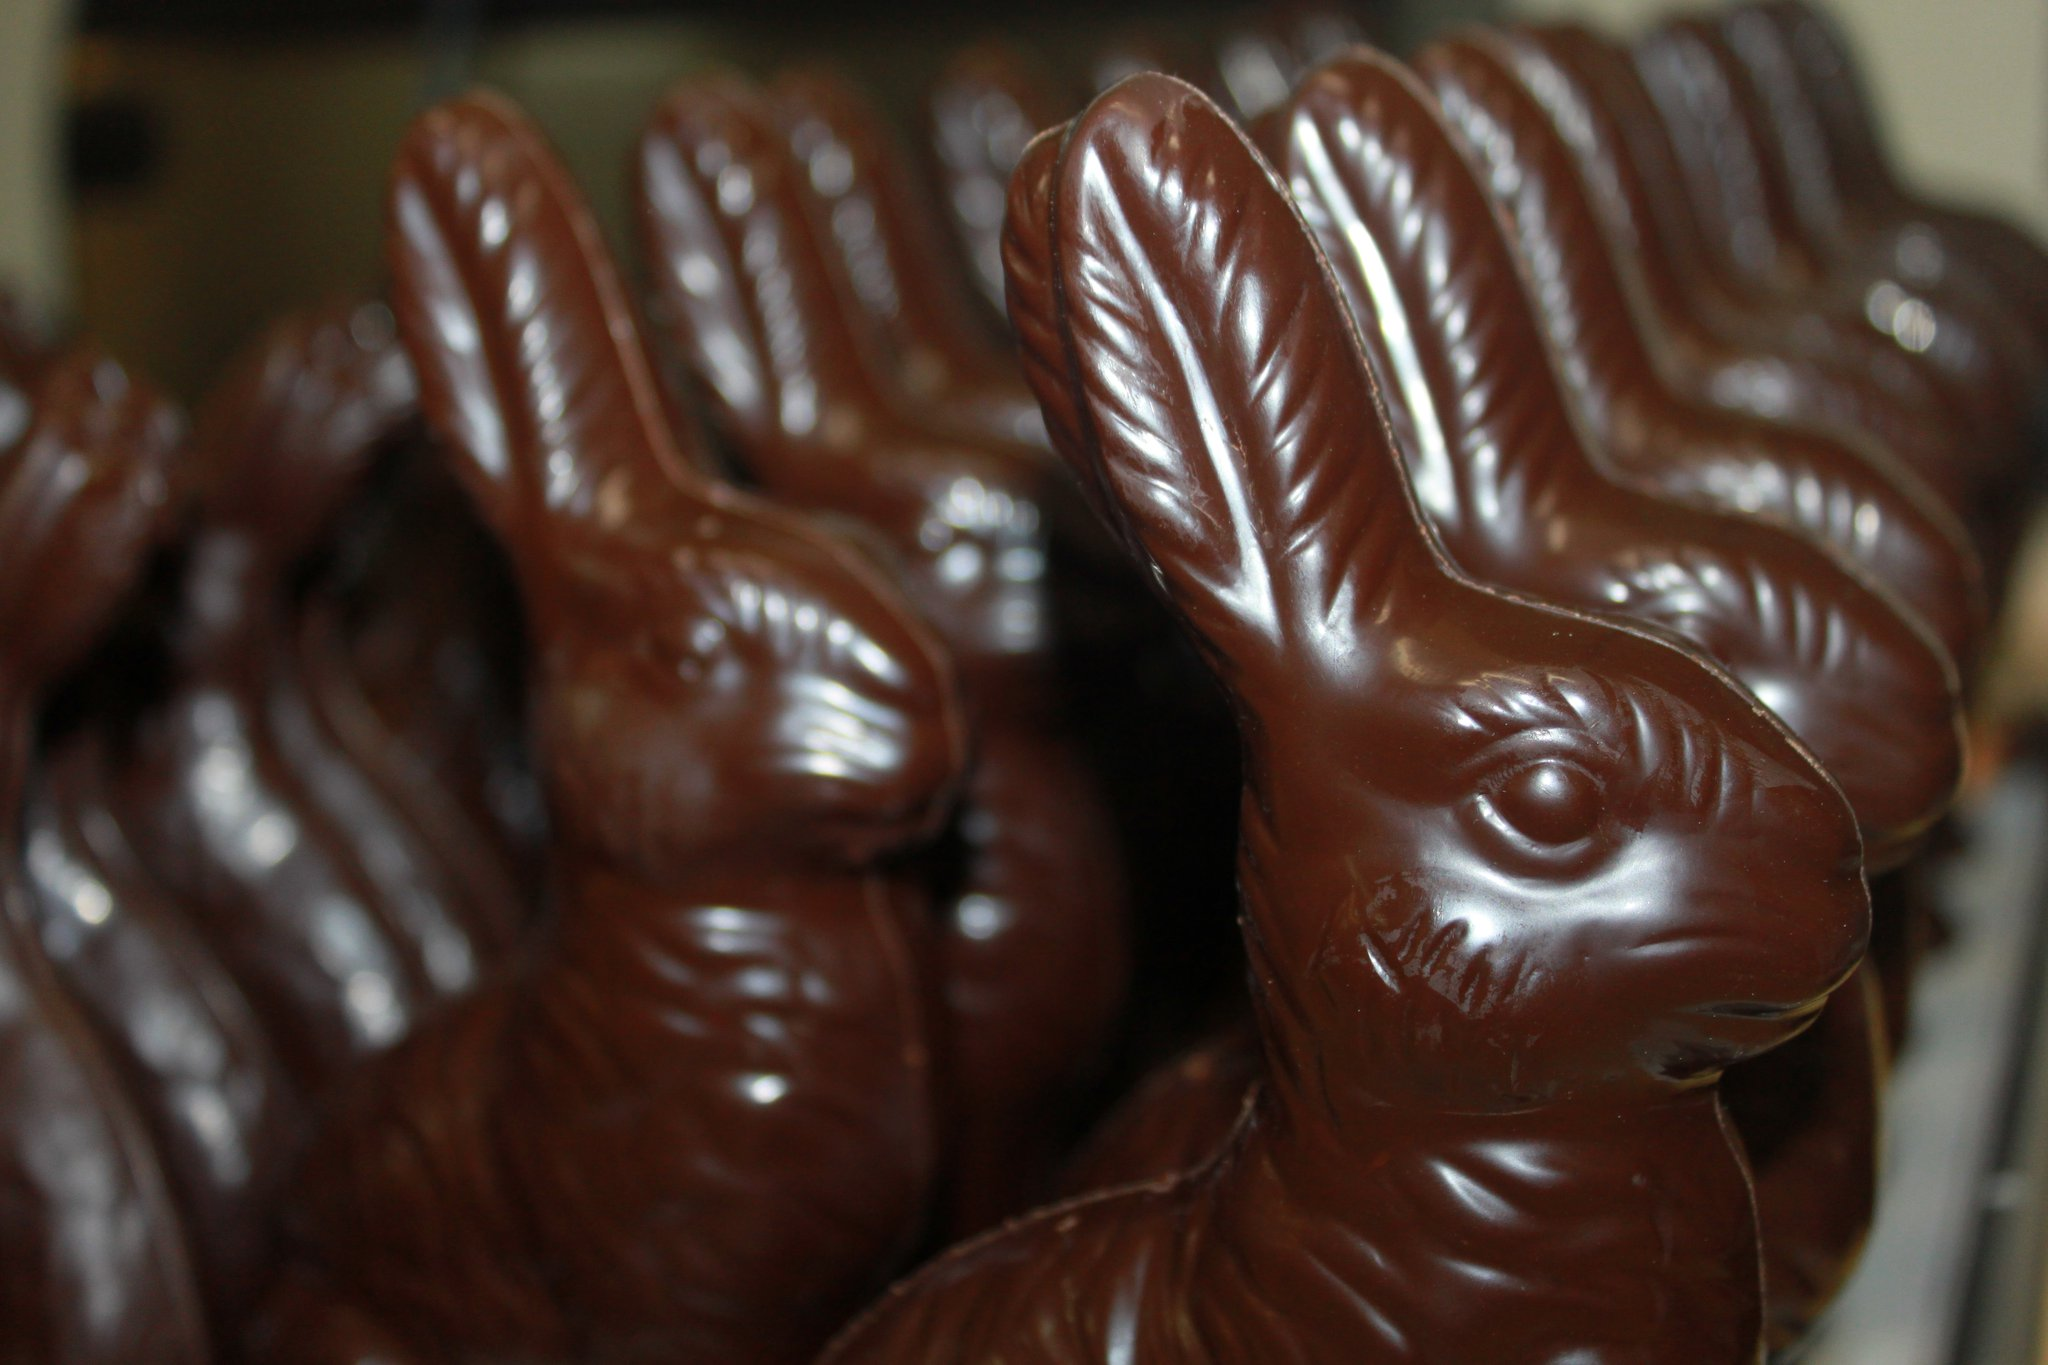 Large Chocolate Bunnies